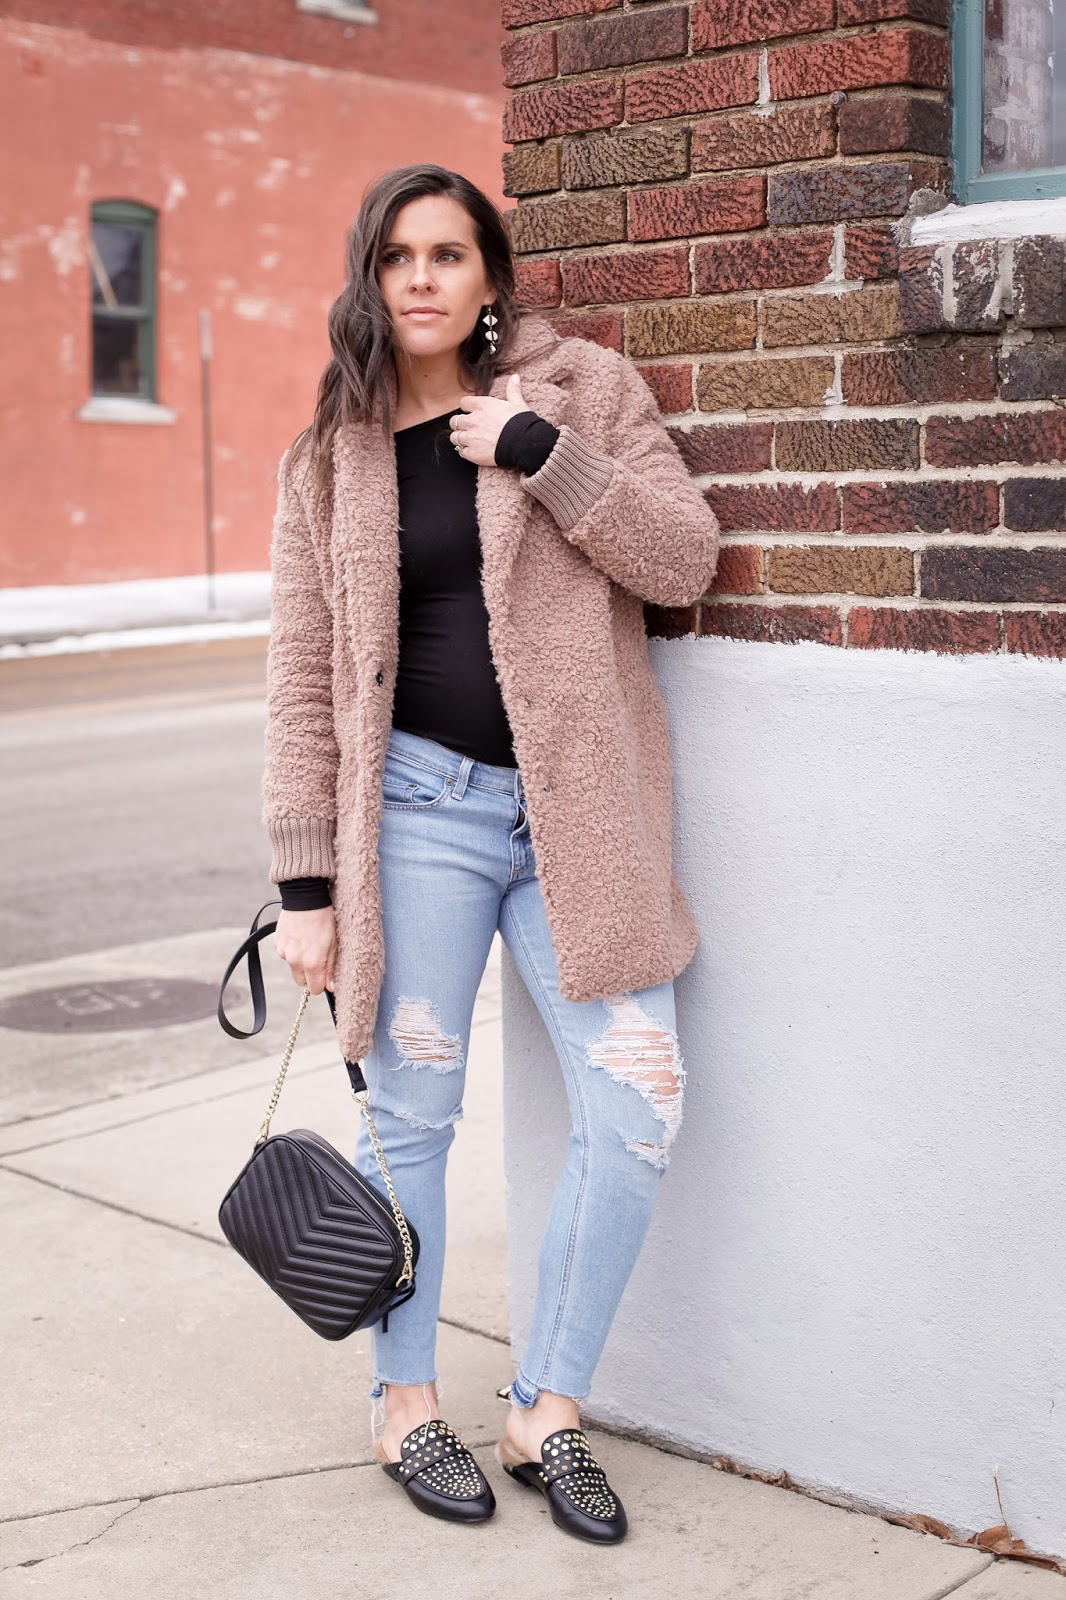 Styling the teddy coat with a bodysuit